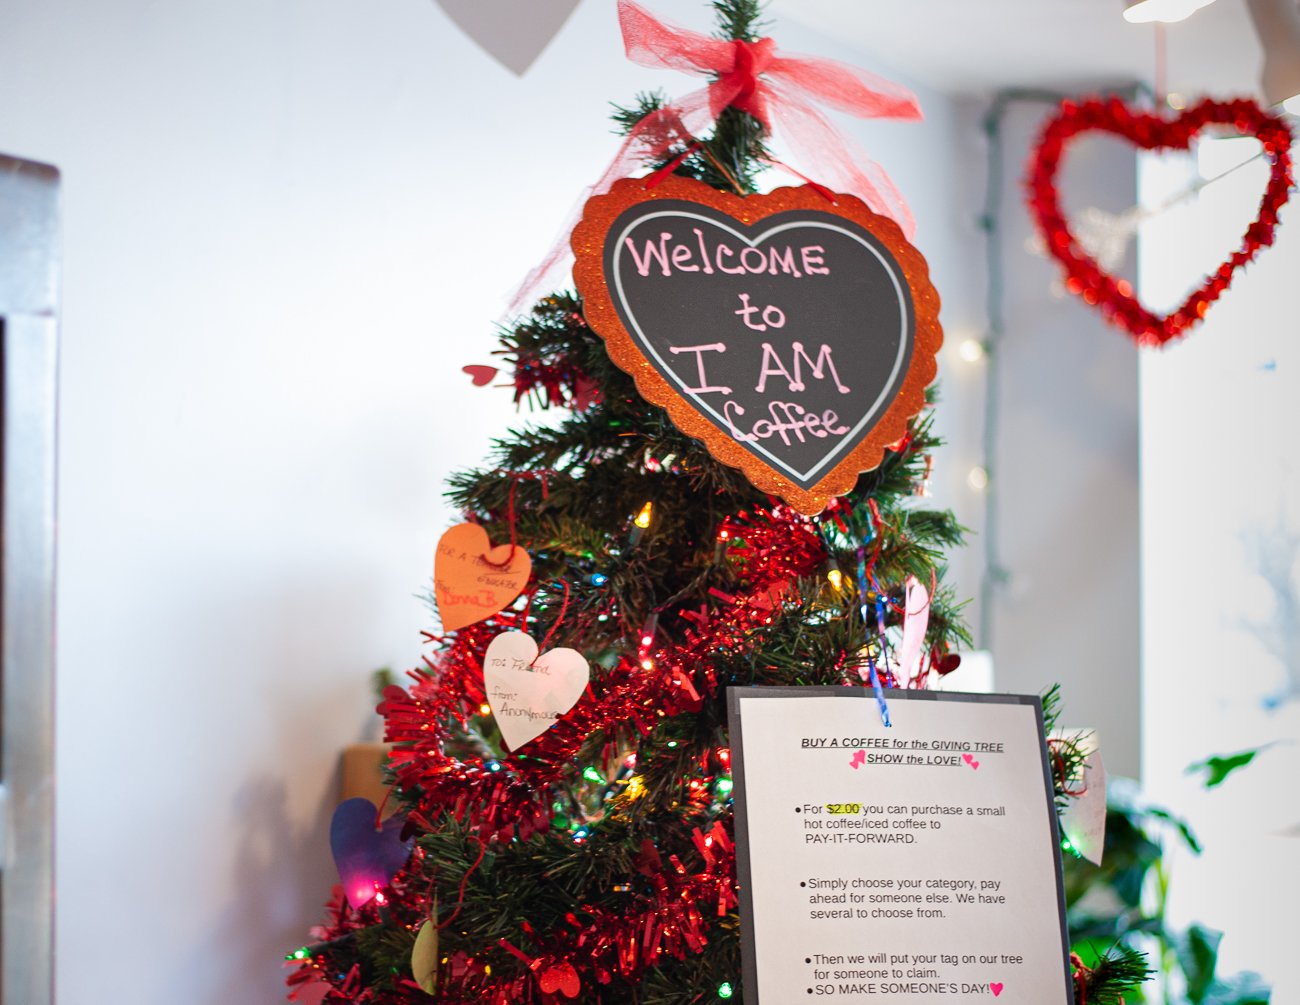 The Give Back Tree gives customers the chance to purchase a small coffee, fill out a tag, and add the tag to the tree, dedicating a free cup of coffee to whoever they label it with.  / Image: Kellie Coleman // Published: 1.31.21